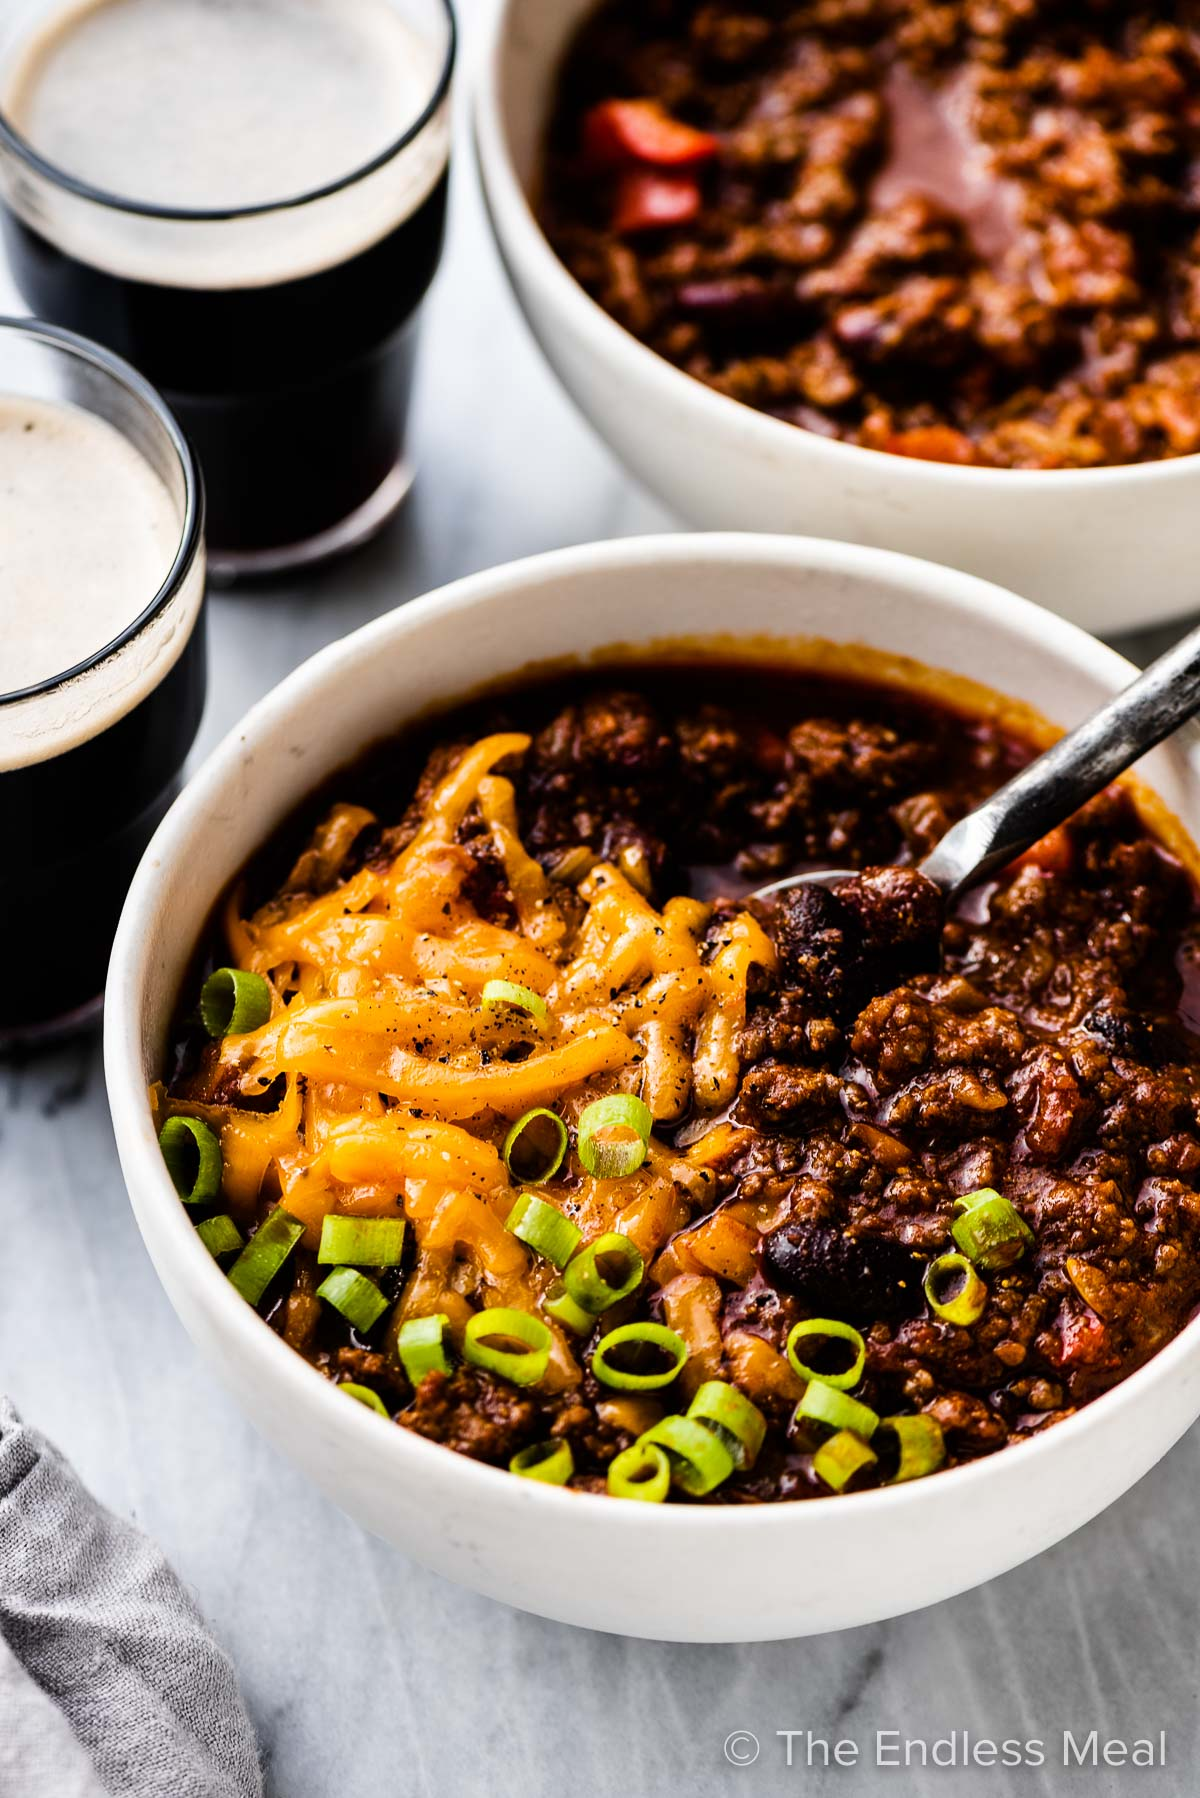 Two bowls of Irish chili with glasses of Guinness on the side.